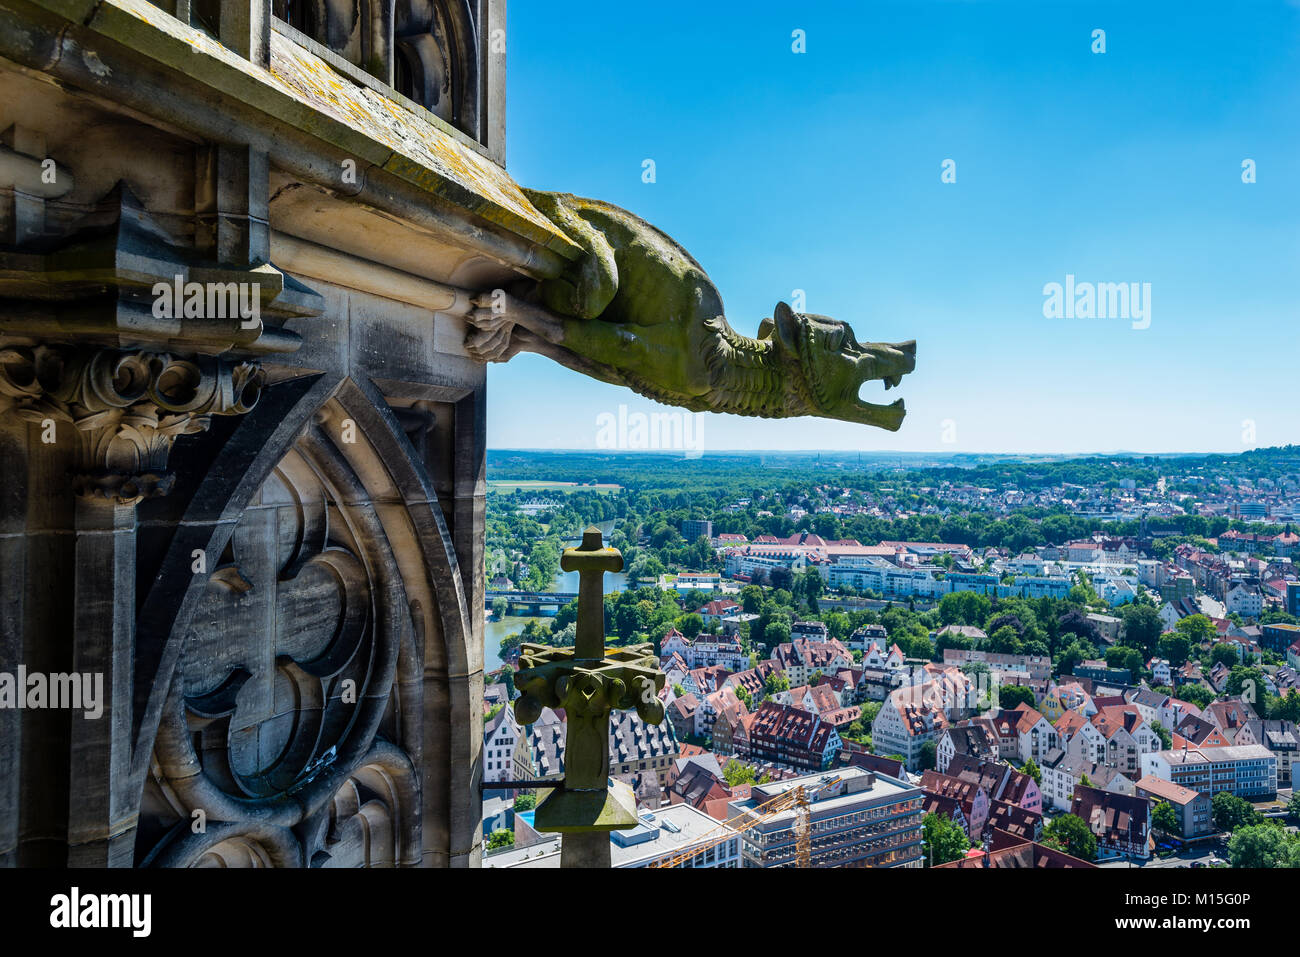 Ulm Minster (German: Ulmer Münster) is a Lutheran church located in Ulm, Germany. Tallest Church, 5th tallest structure build before the 20th century. Stock Photo